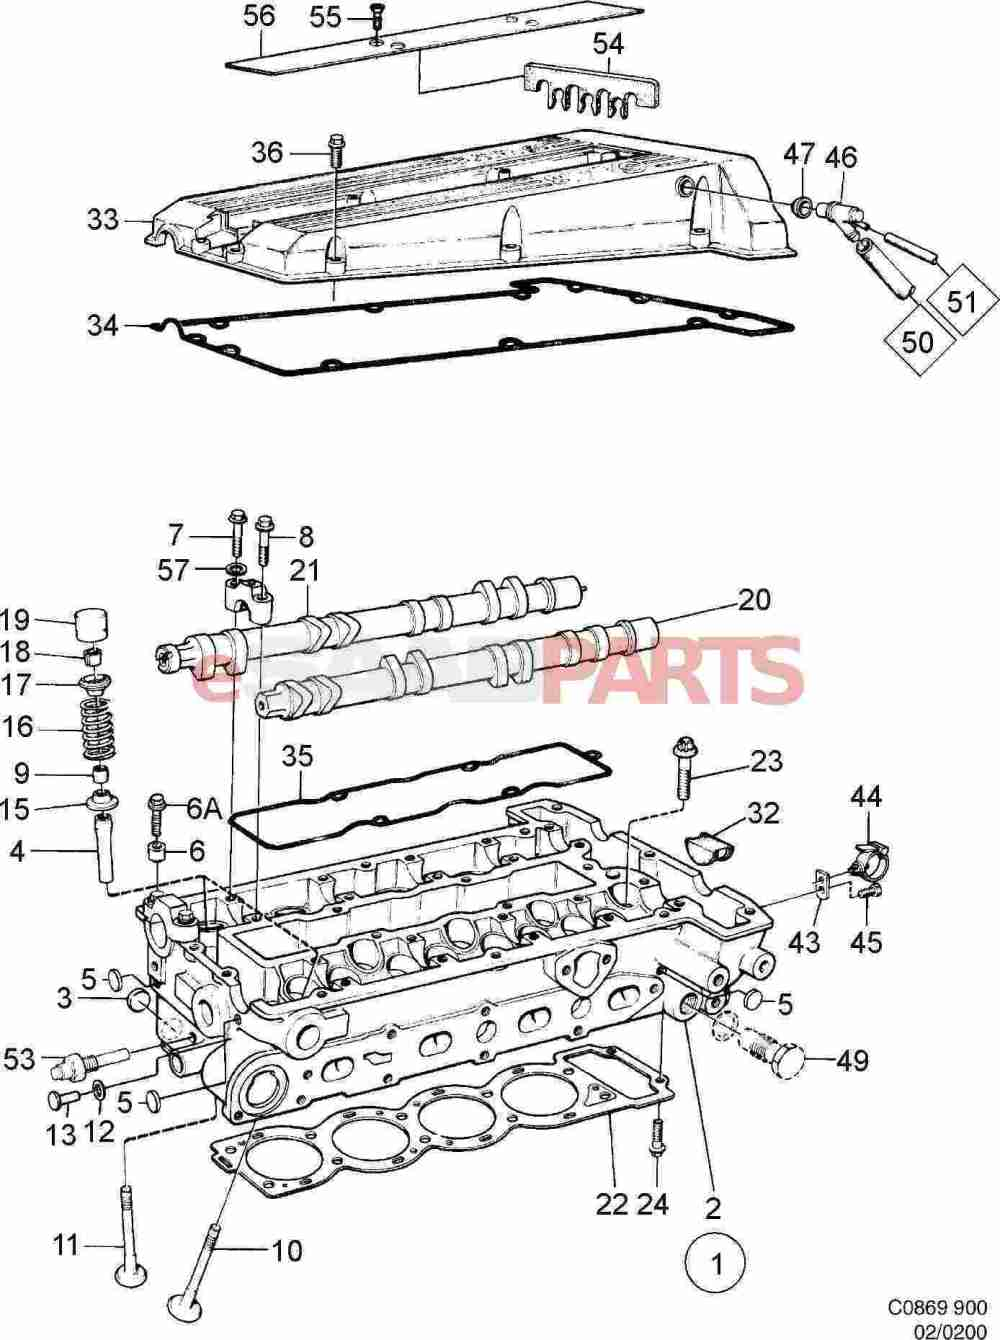 medium resolution of 8822041 saab valve cover gasket kit genuine saab parts from egr valve 150 scooters valve cover diagram